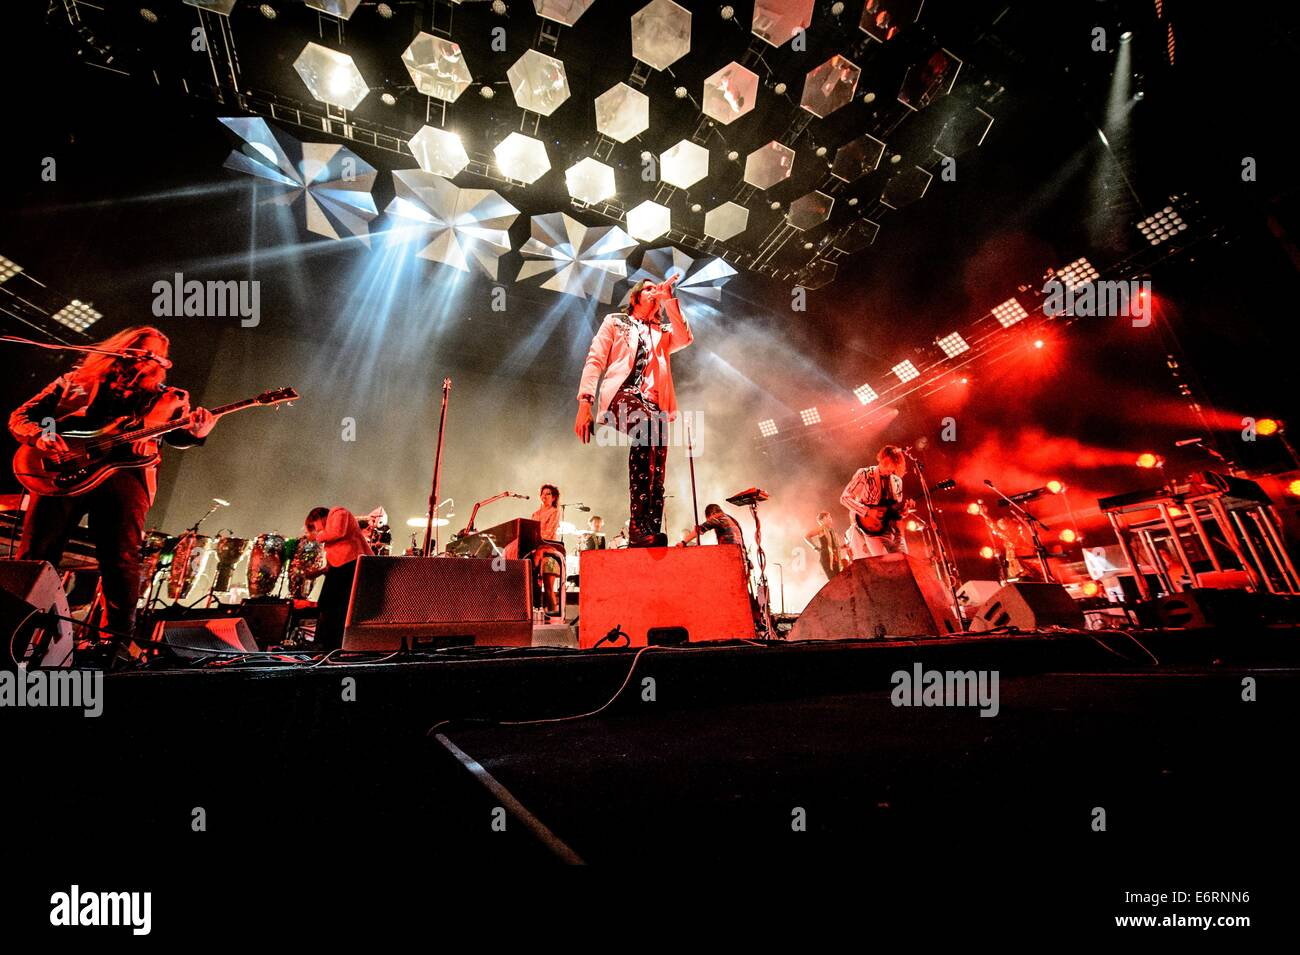 Toronto, Ontario, Canada. 29th Aug, 2014. Canadian indie rock band Arcade Fire perfromed sold out show at Molson - Stock Image